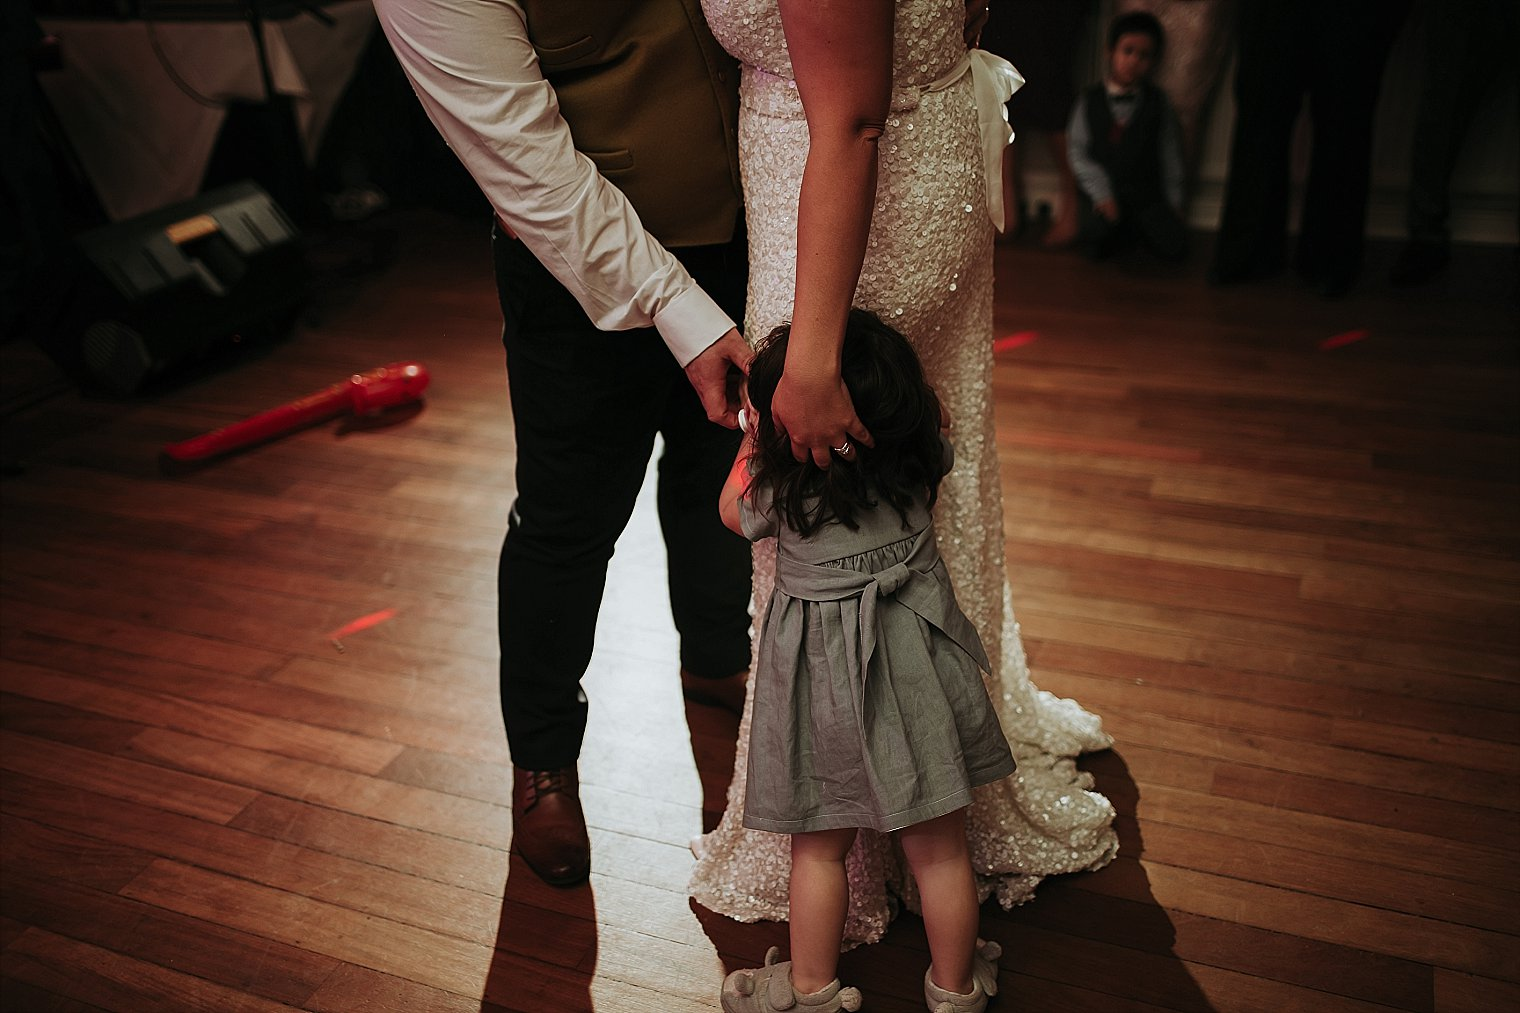 Flowergirl on the dancefloor